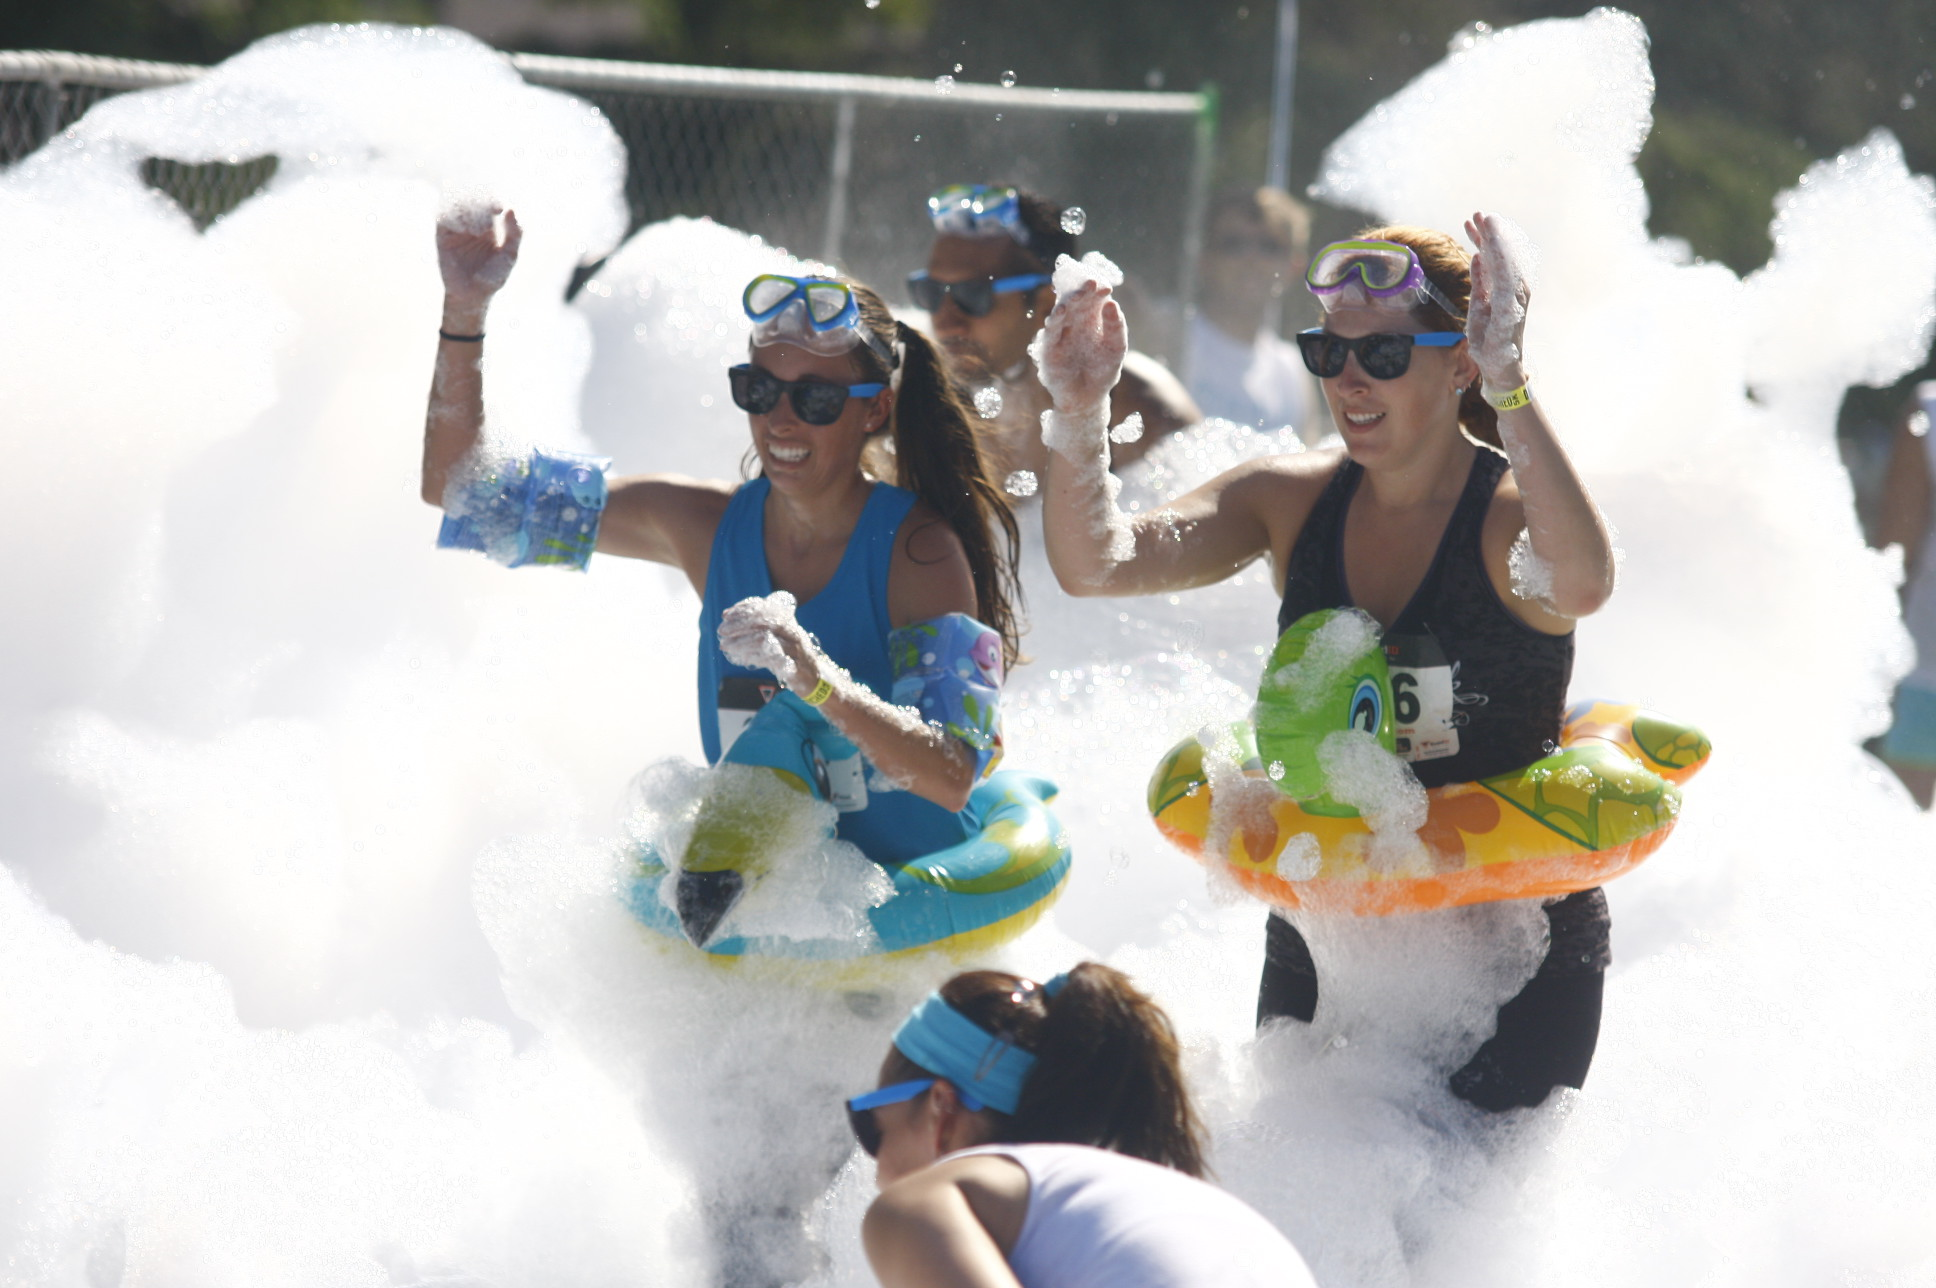 It ends with a 100 foot Slip N' Slide!